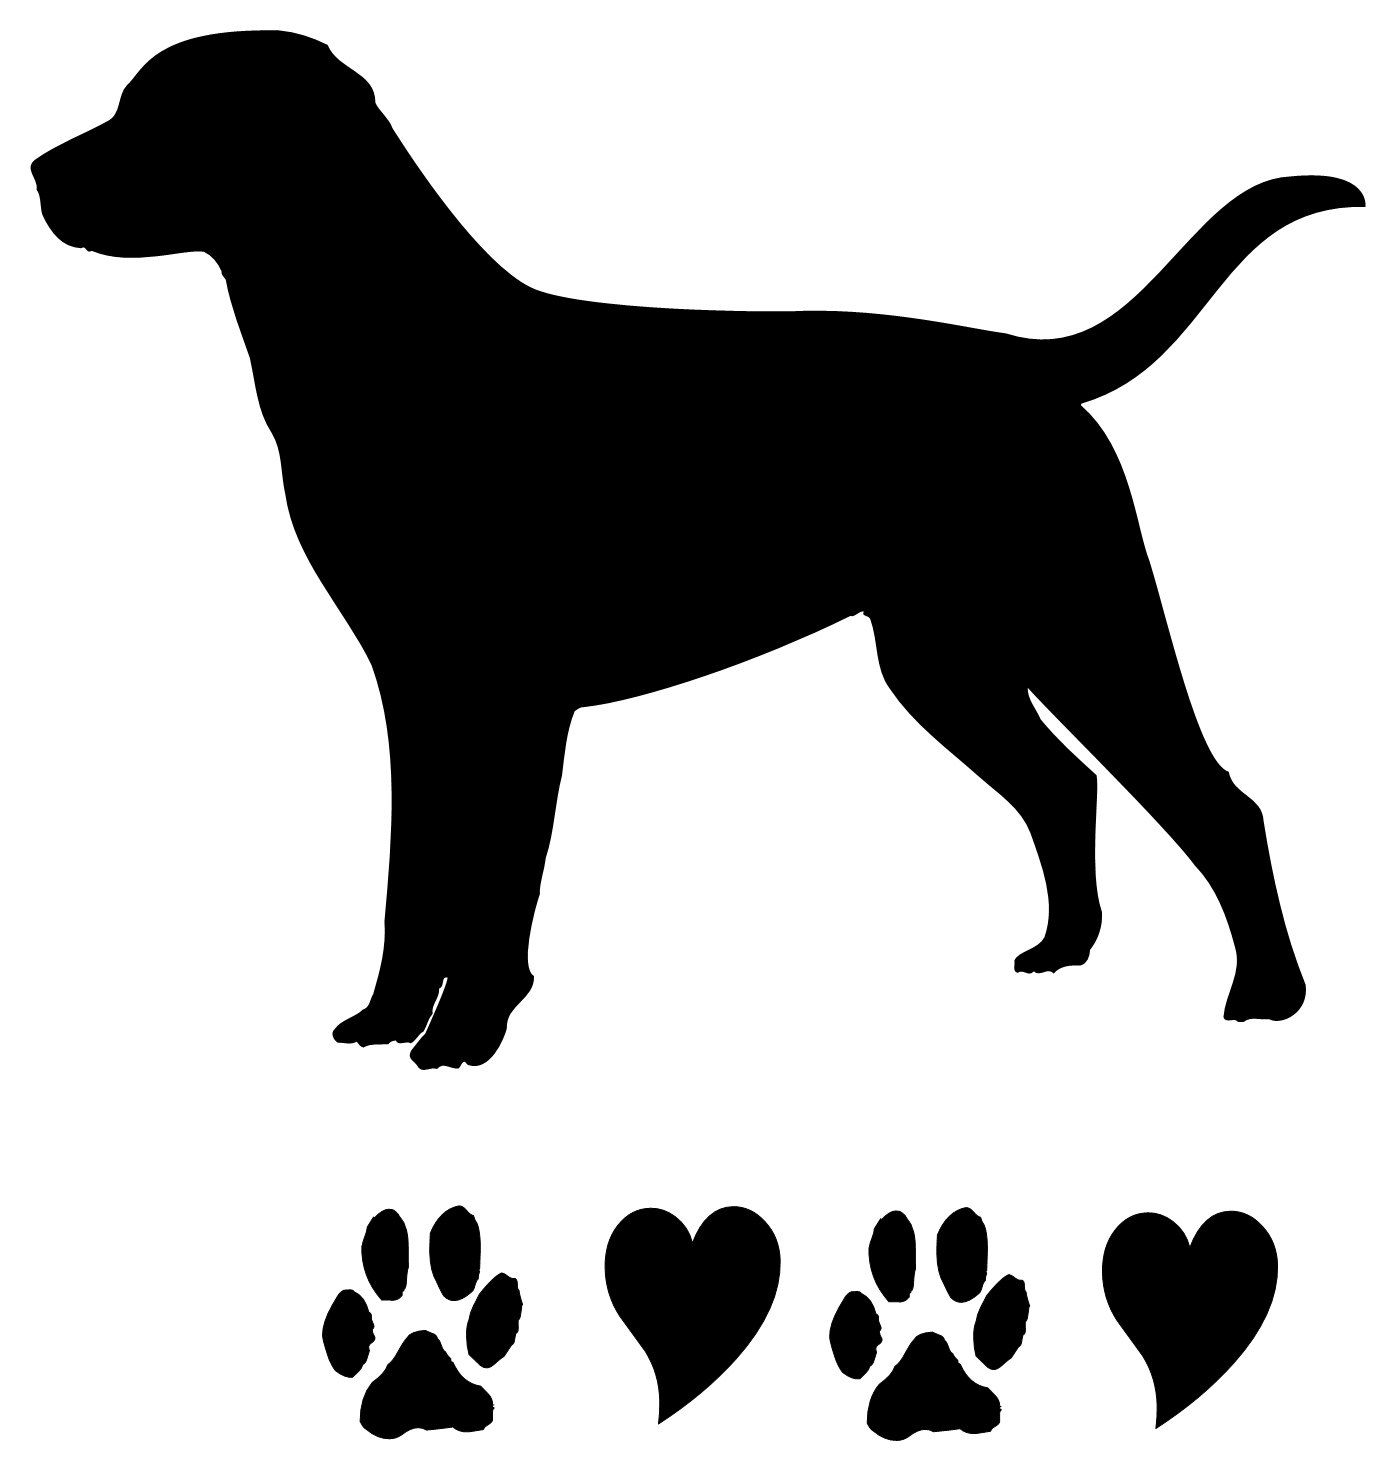 black lab silhouette clip art clipart best mako on etsy rh pinterest com black labrador retriever clip art black labrador retriever clip art